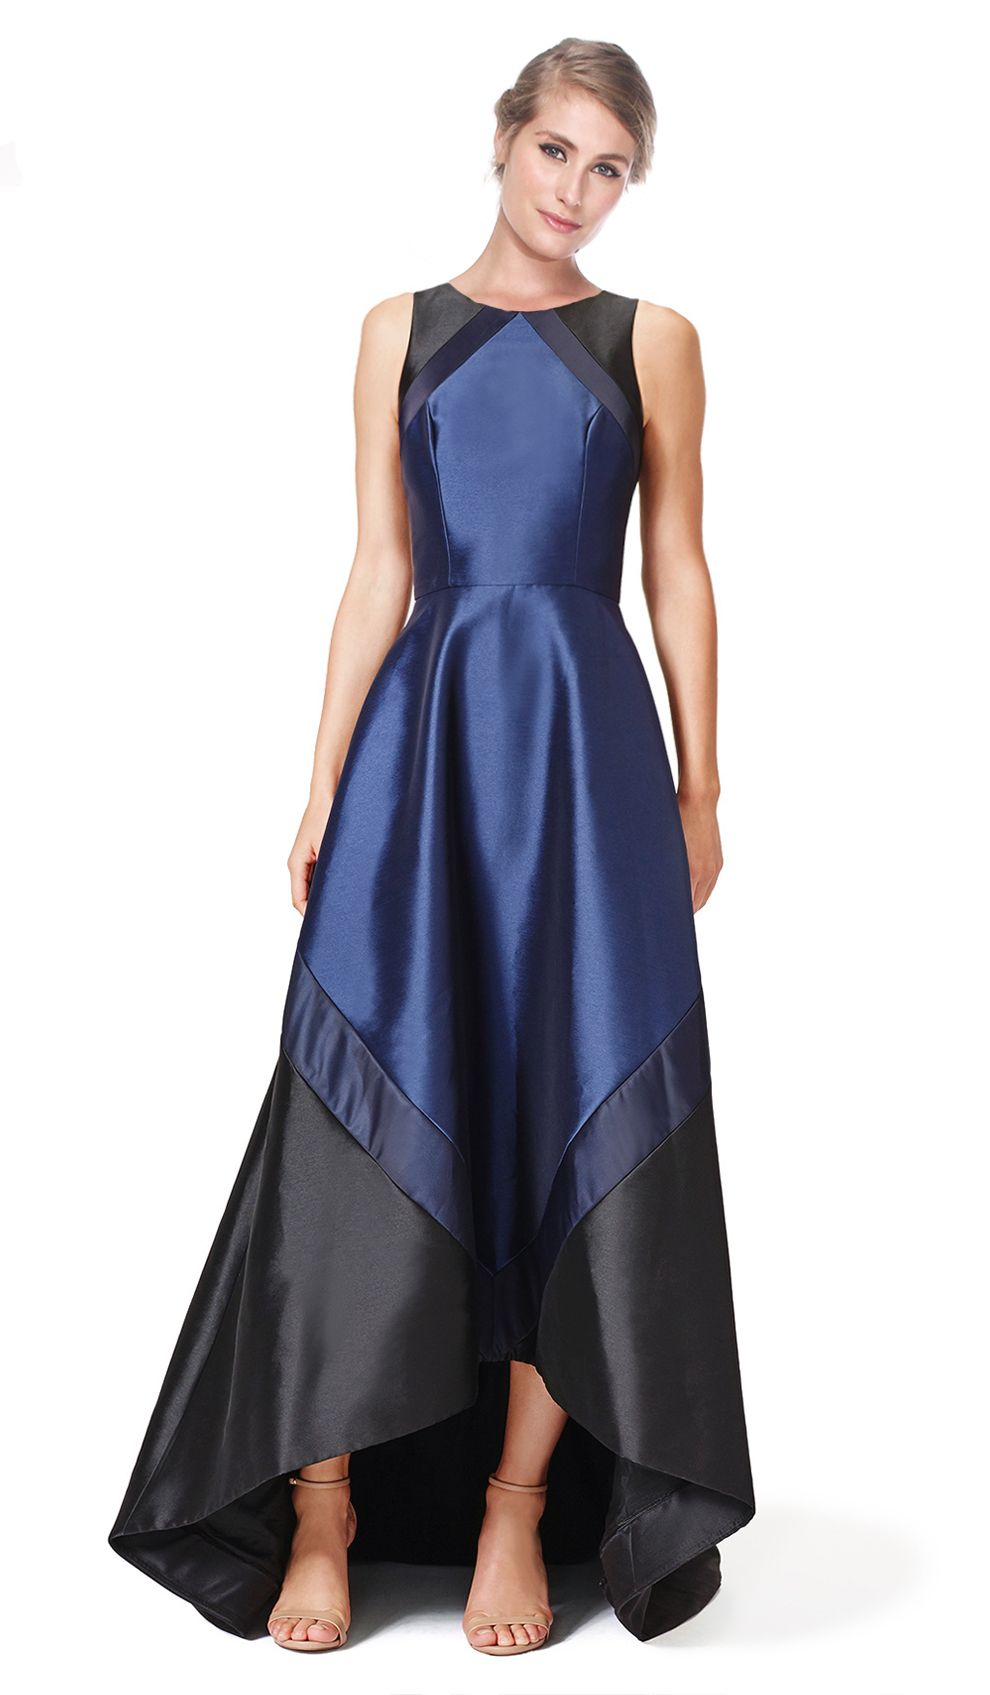 Navy black sleeveless gown hire theia couture front navy black sleeveless gown hire theia couture front ombrellifo Images